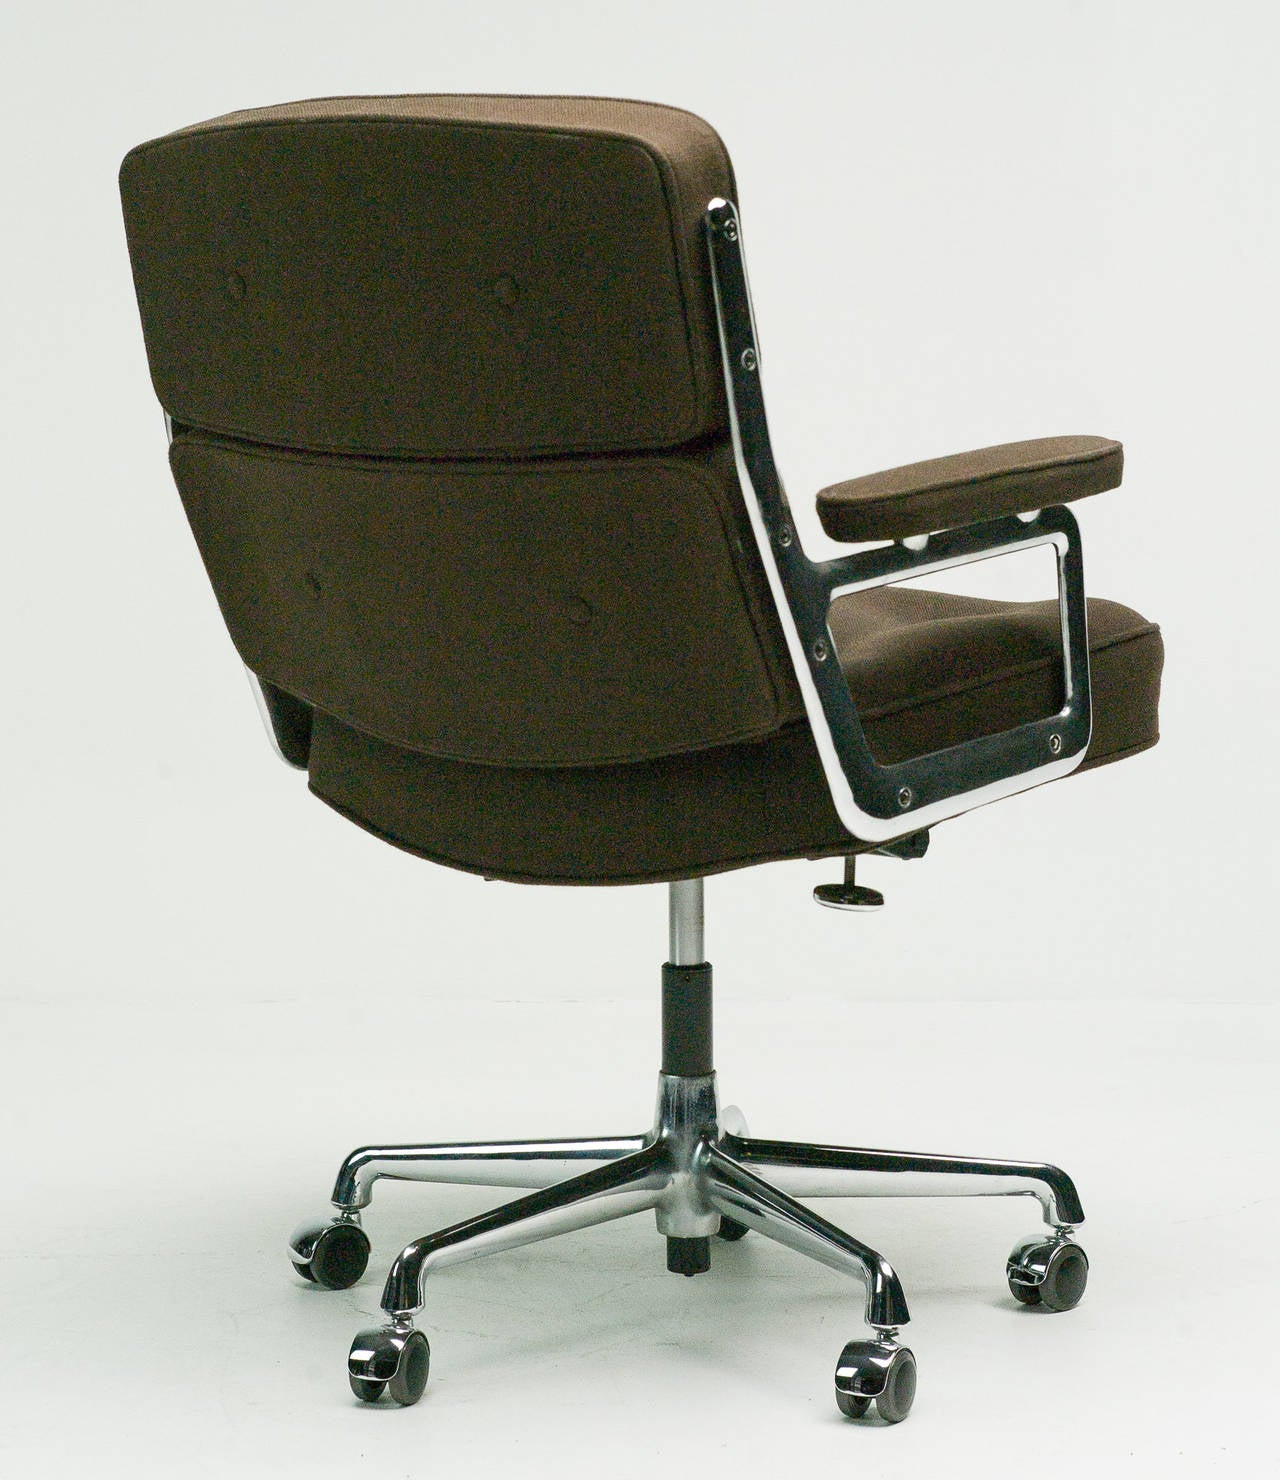 Charles eames vitra es 104 lobby chair at 1stdibs for Eames lobby chair replica